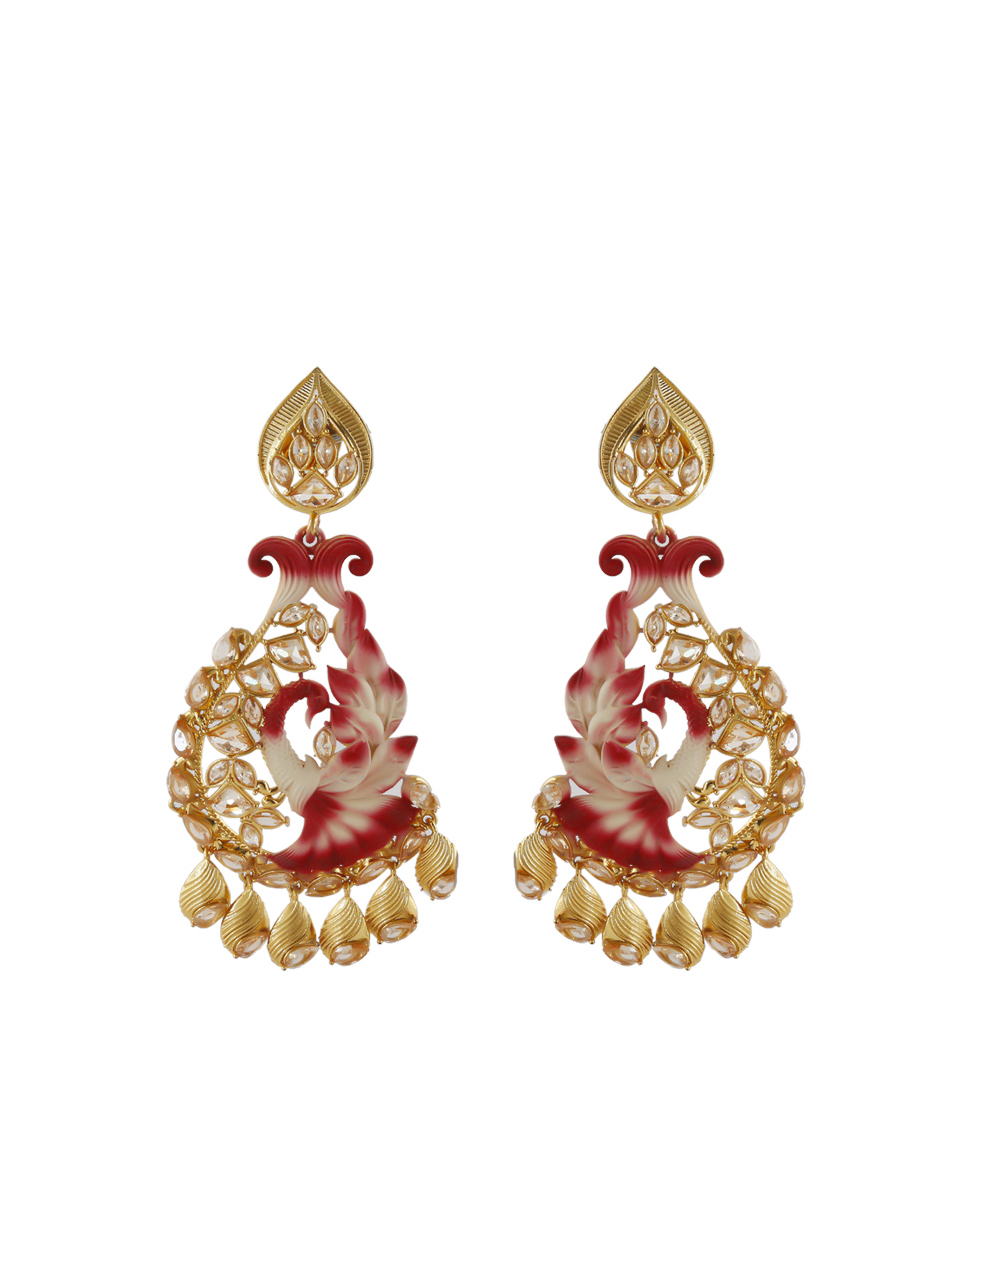 Very Classy Maroon Colour Gold Finish Stunning Earring For Girls